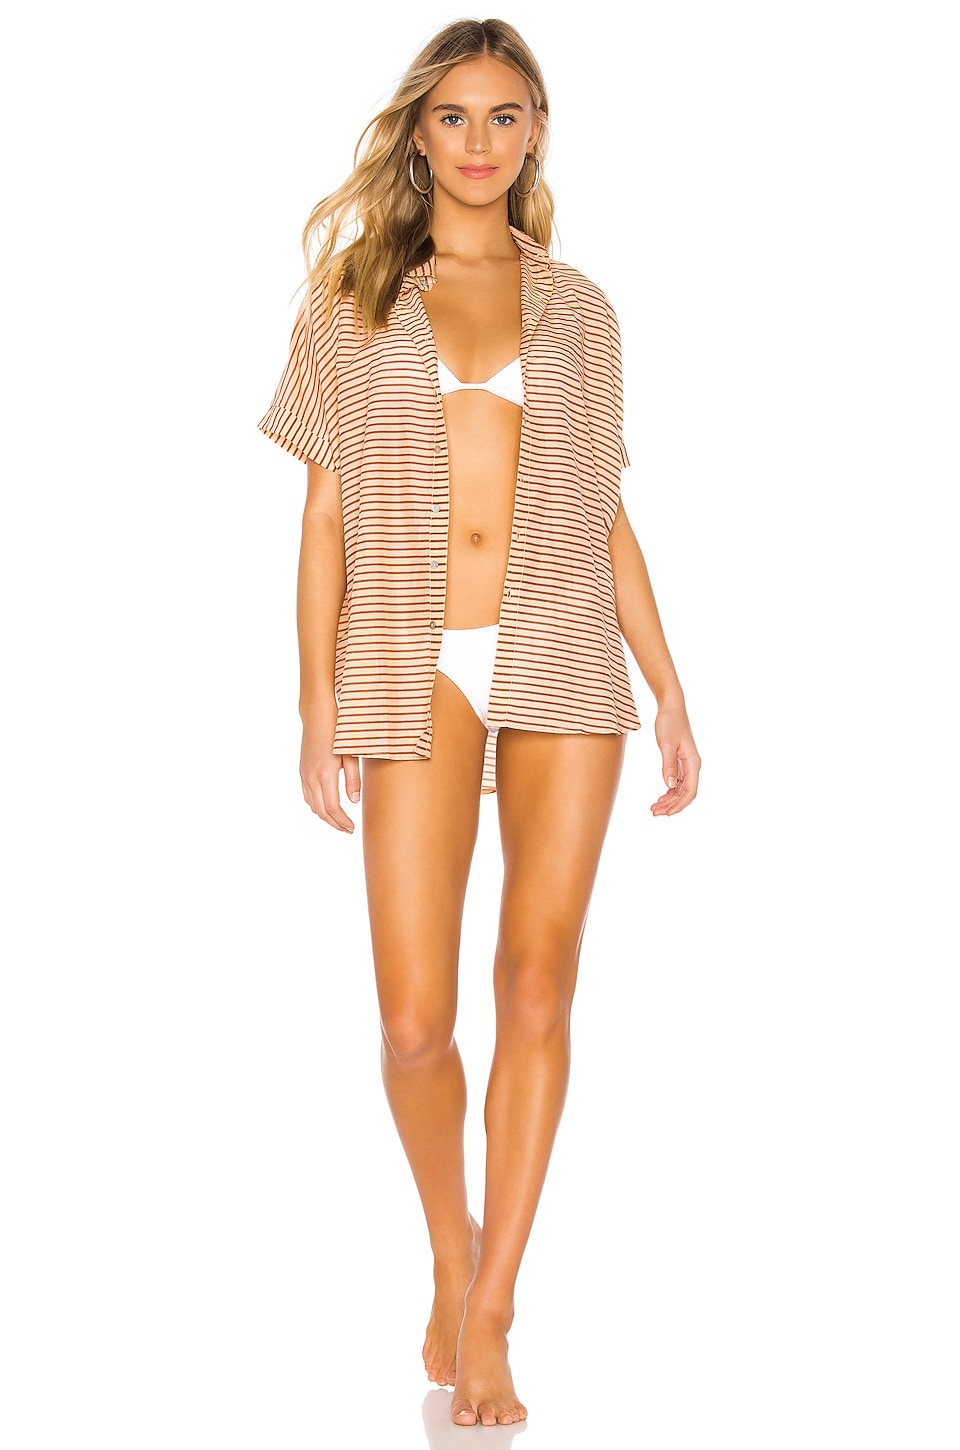 Acacia Swimwear Mombasa Button Up in Apricot Stripe